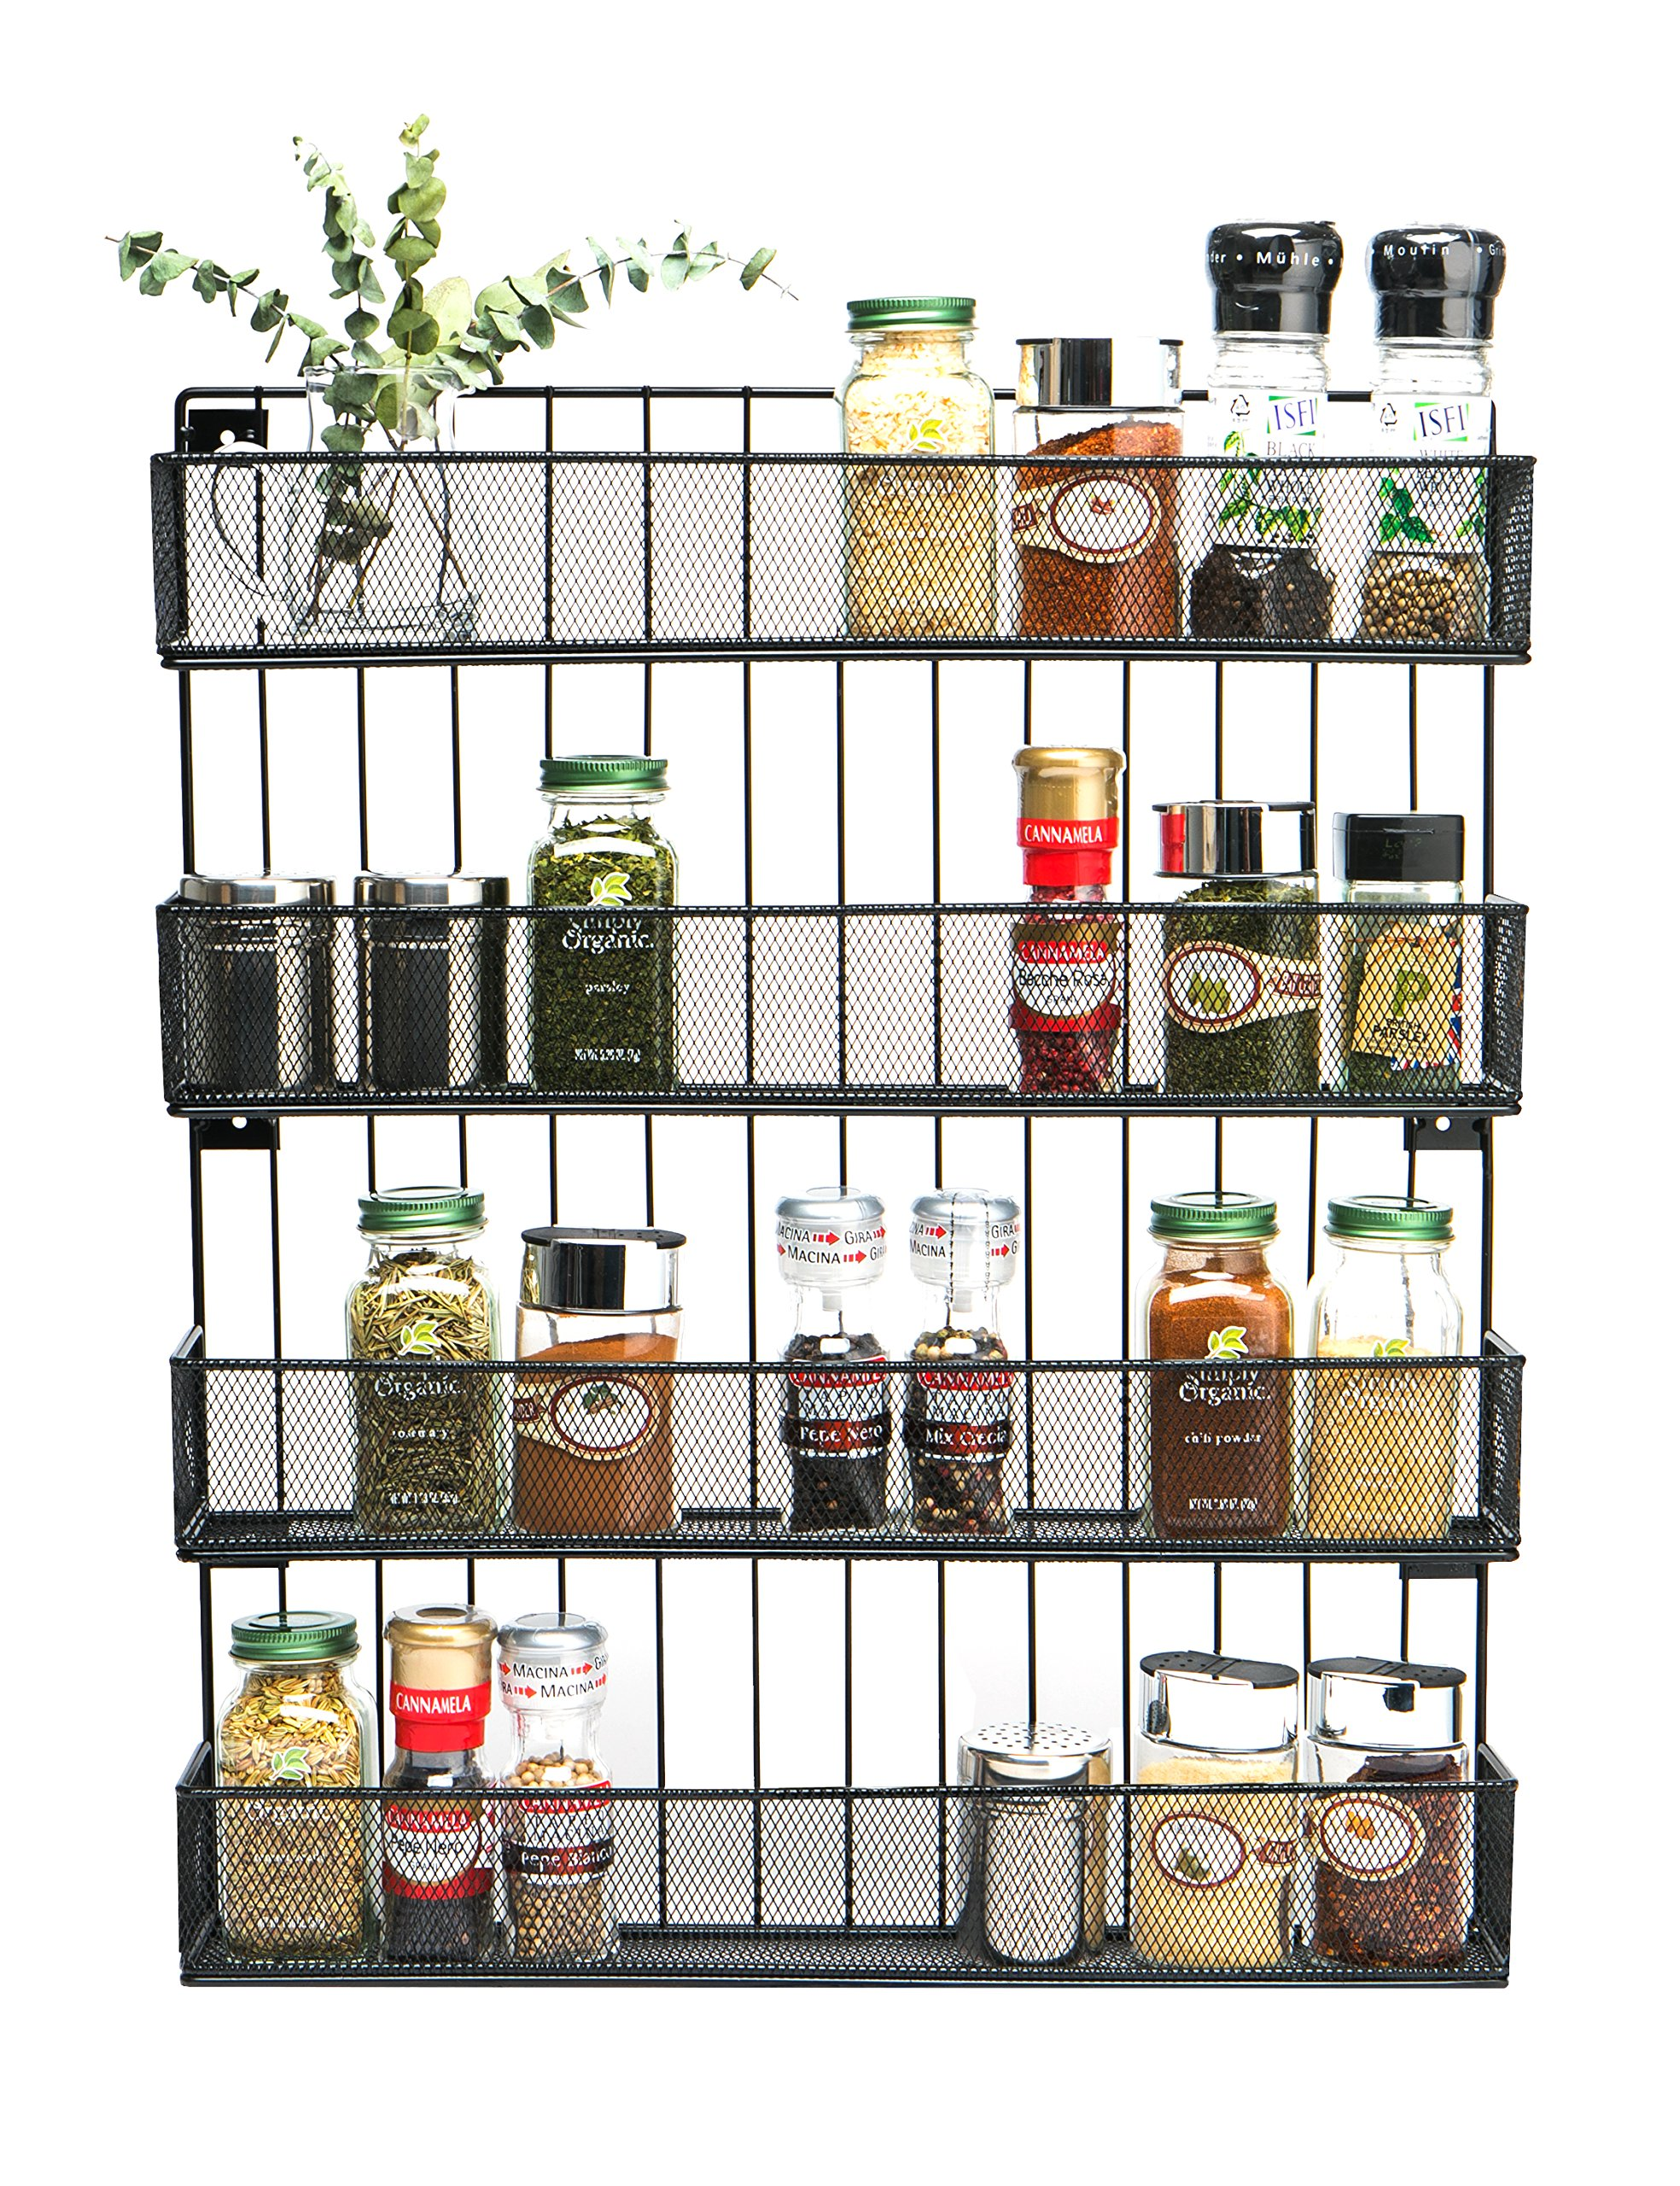 JackCubeDesign Wall Mount Spice Rack 4 tier Kitchen Countertop Worktop Display Organizer Spice Bottles Holder Stand Shelves(17.6 x 2.8 x 20.8 inches) - :MK418A by JackCubeDesign